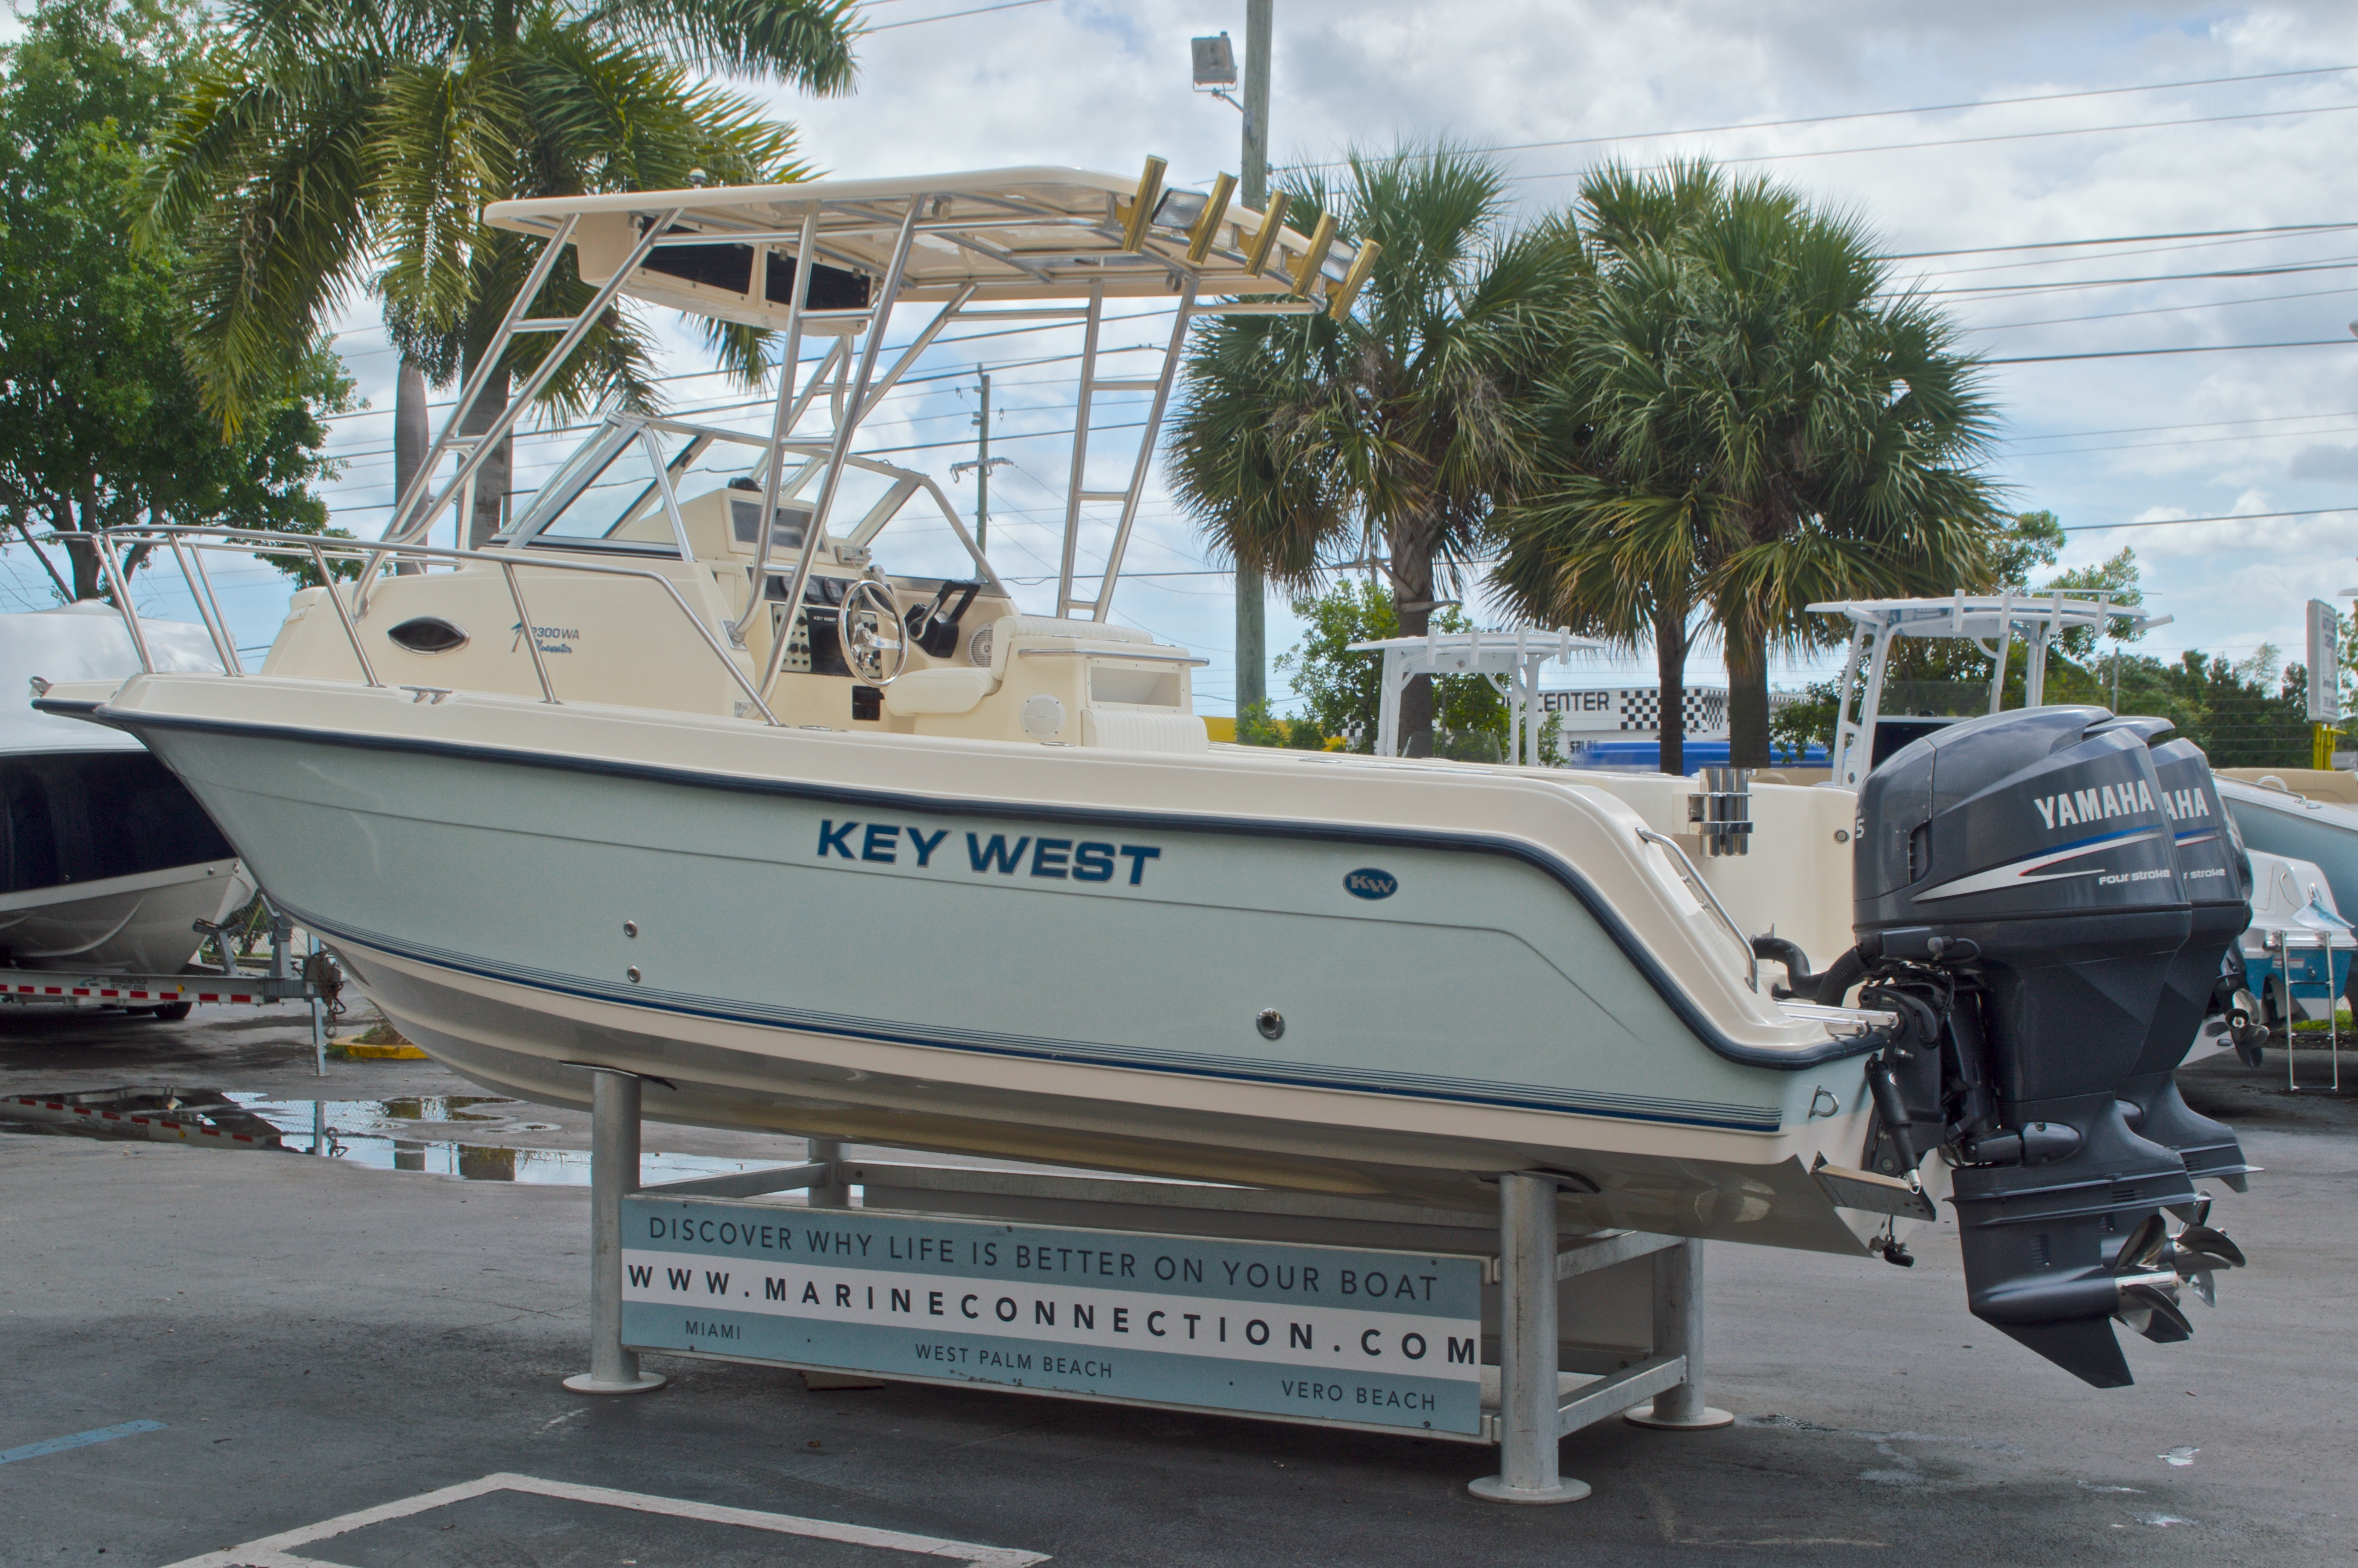 Thumbnail 6 for Used 2005 Key West 2300 WA Walkaround boat for sale in West Palm Beach, FL